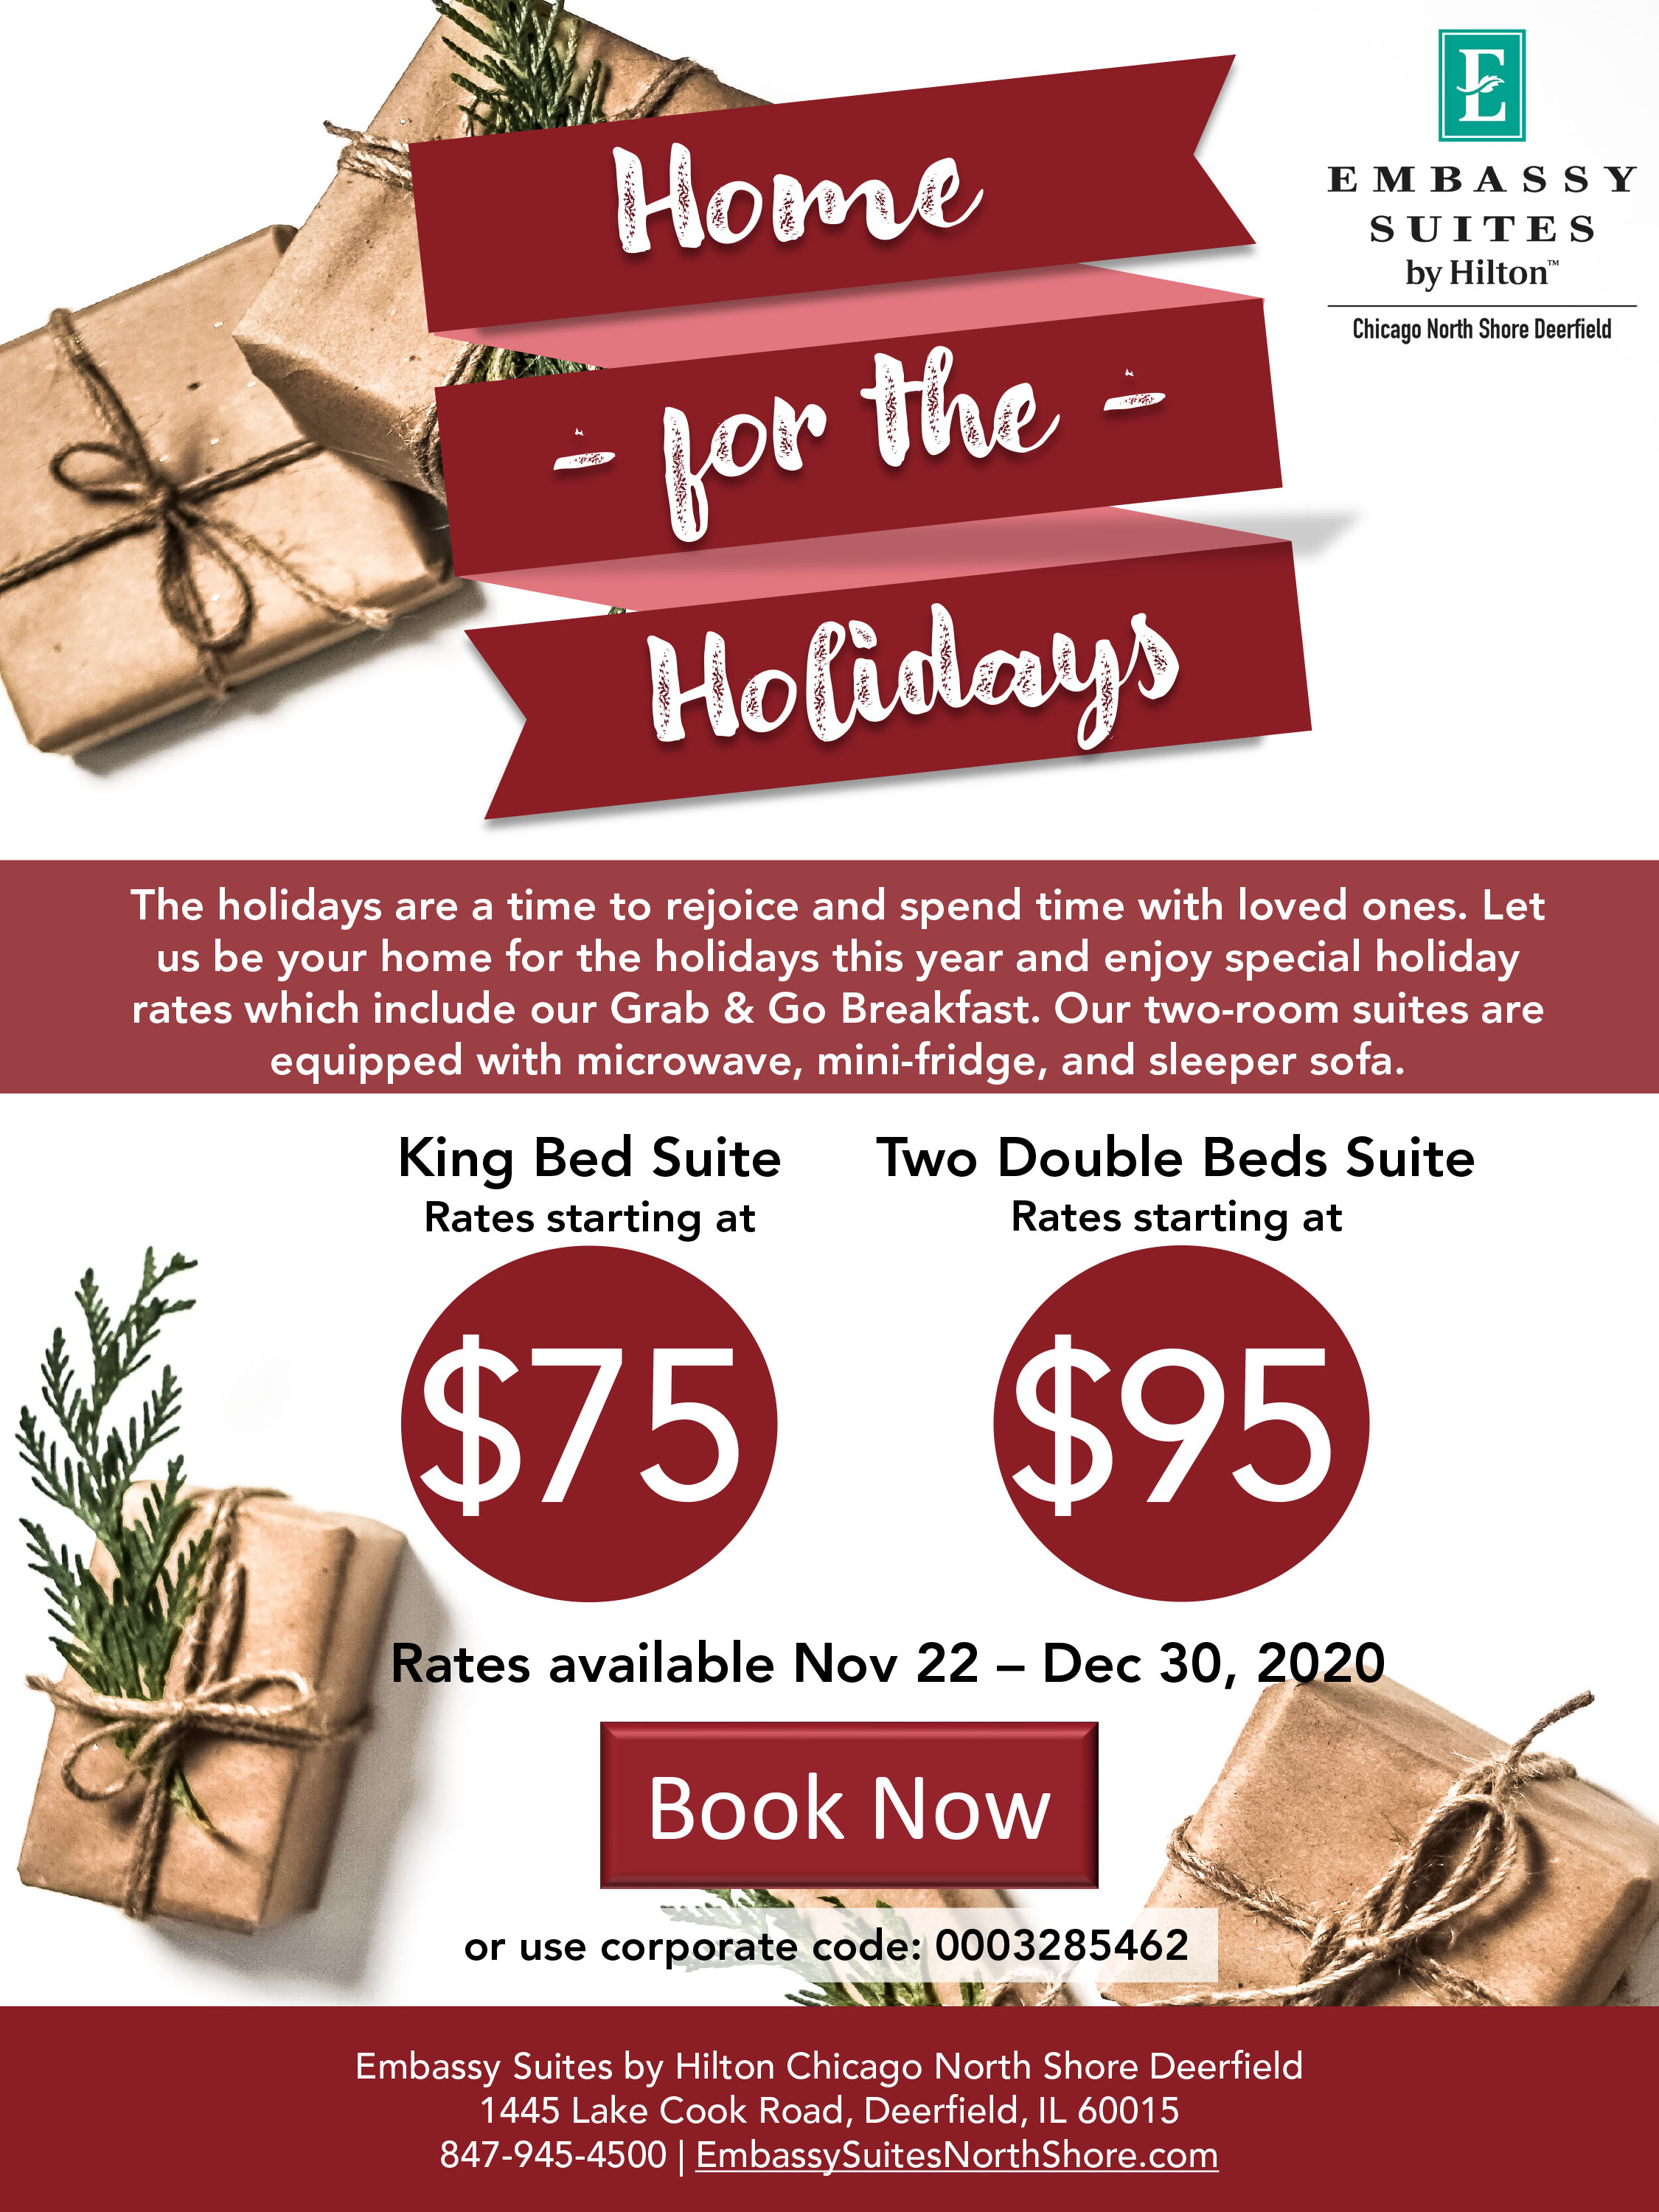 Embassy Suites - Home For The Holidays